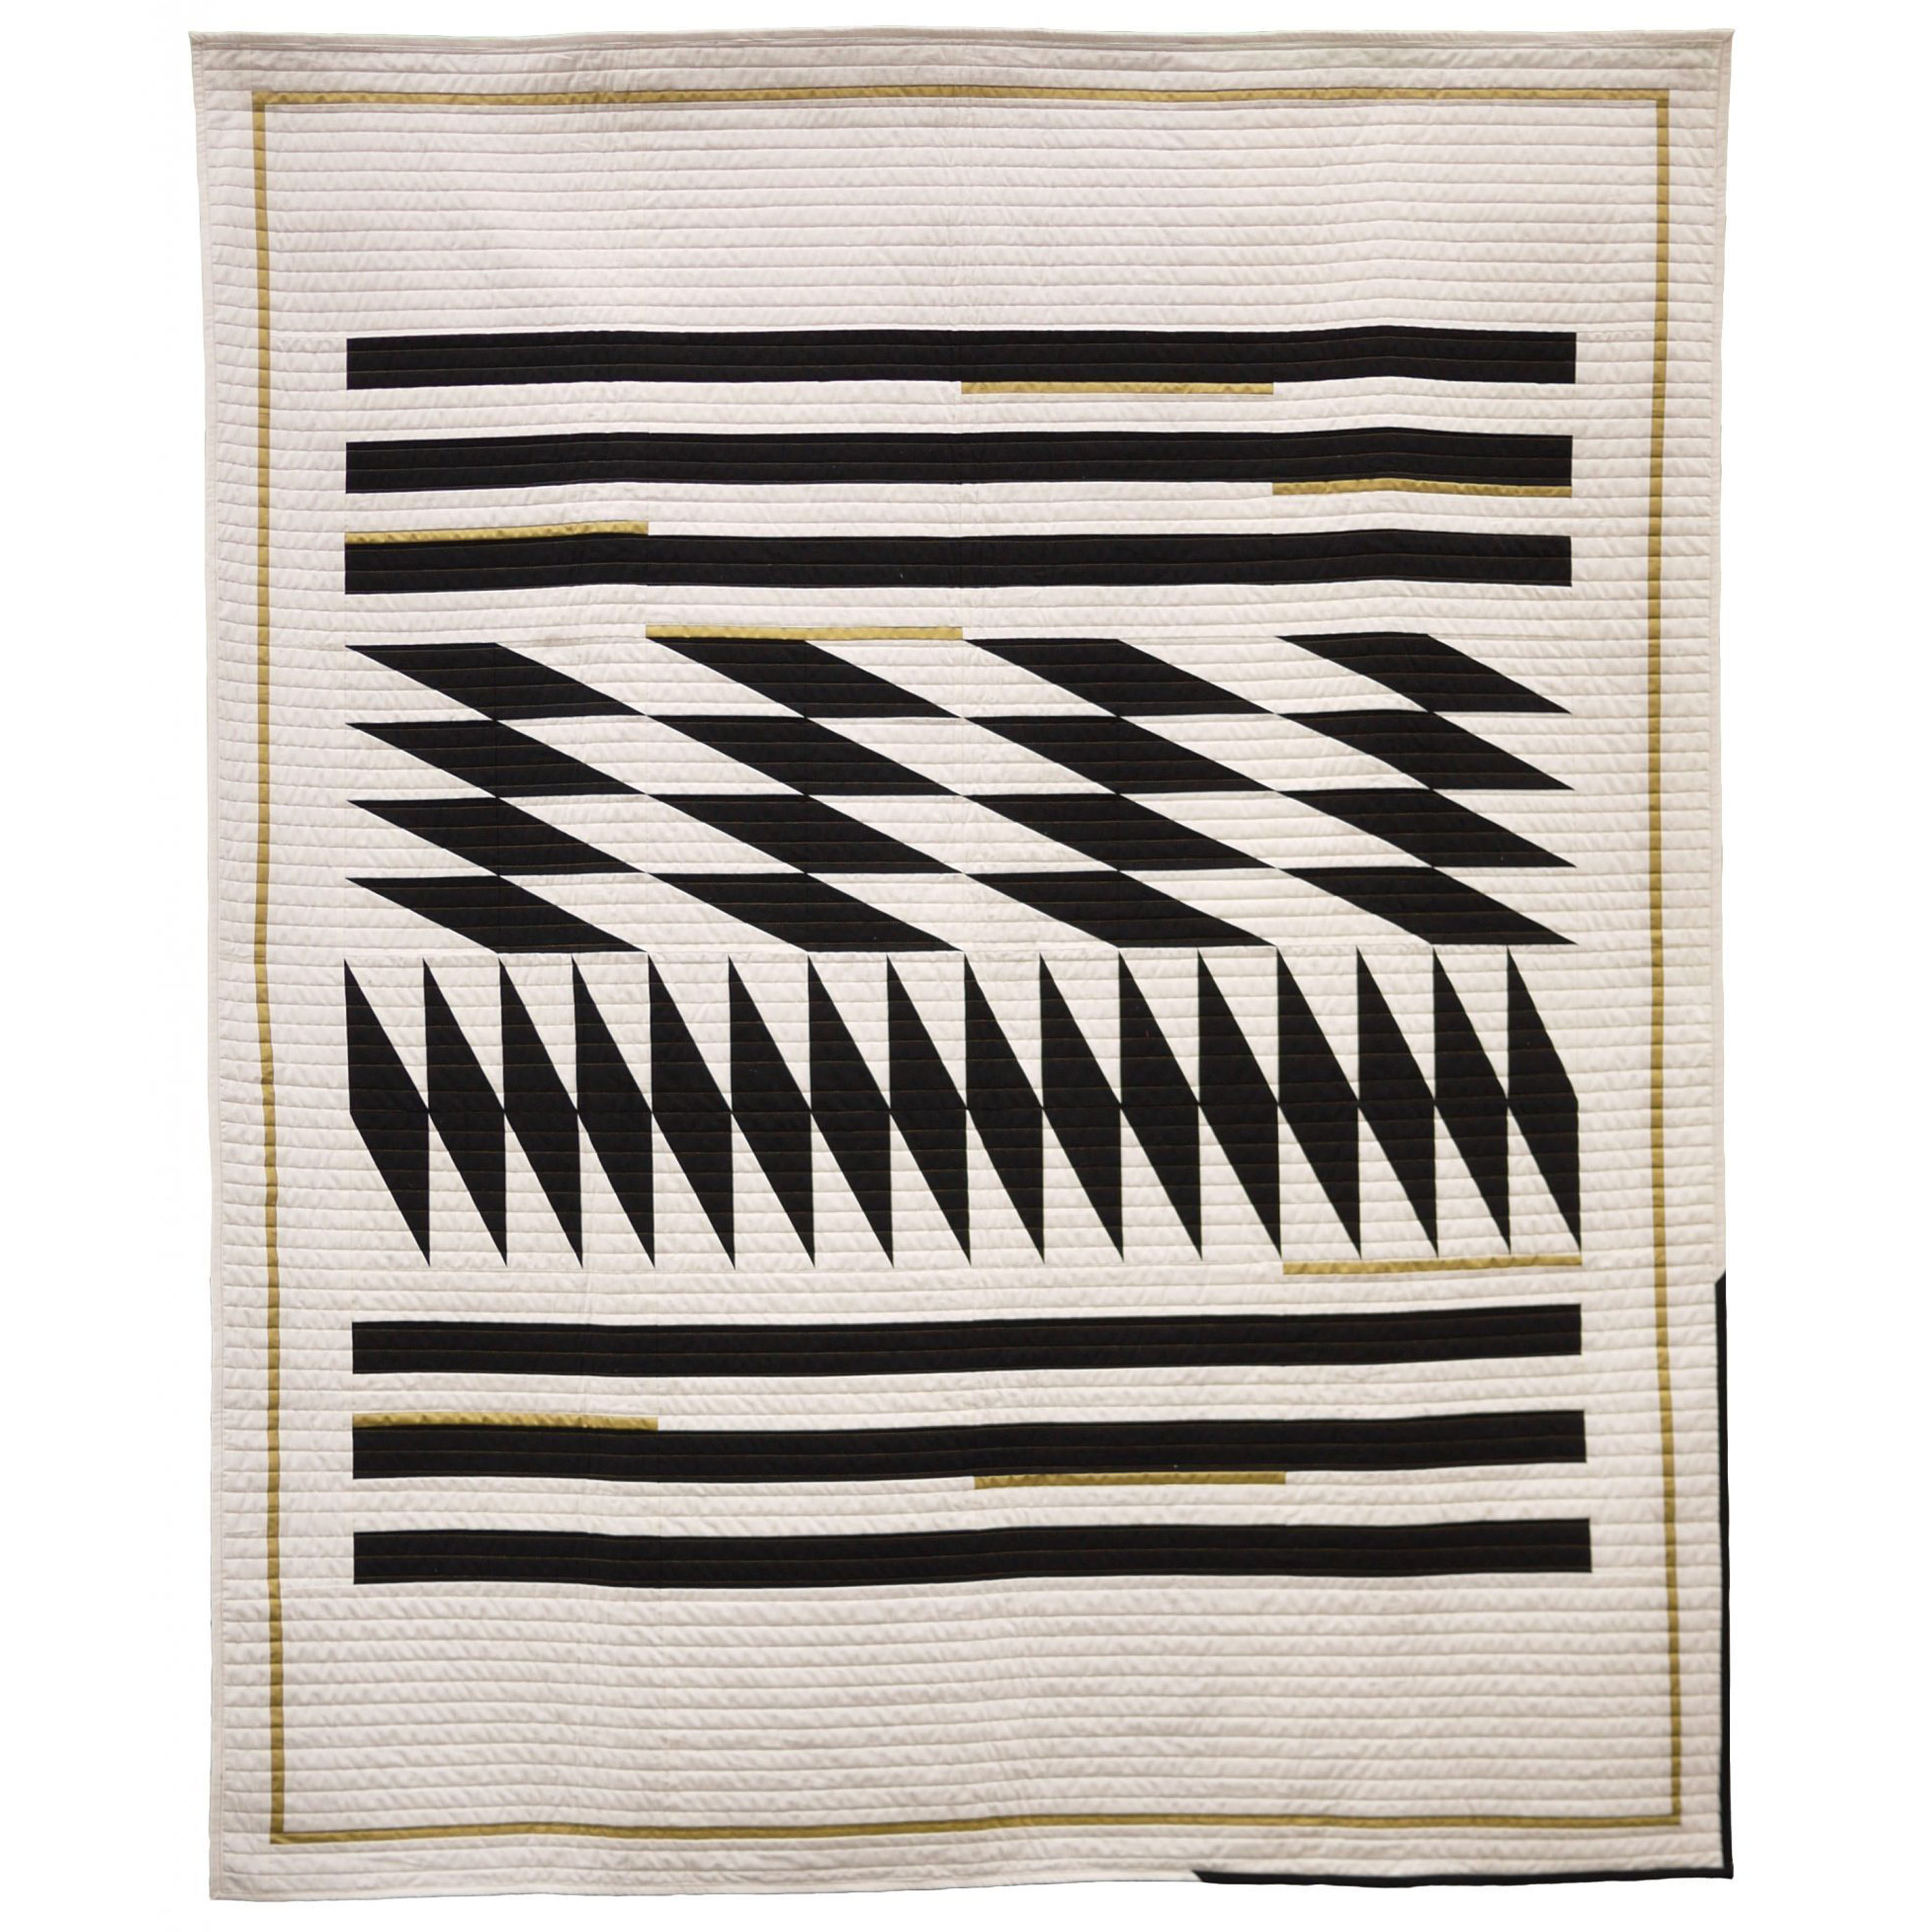 "<b>Inlay, Black - Throw Size</b><br>58"" x 70""<br>Cotton, cotton batting<br><a href=""https://3rdstoryworkshop.com/product/inlay-collection-throw-quilt"" target=""_blank"" rel=""noopener noreferrer"">PURCHASE</a>"